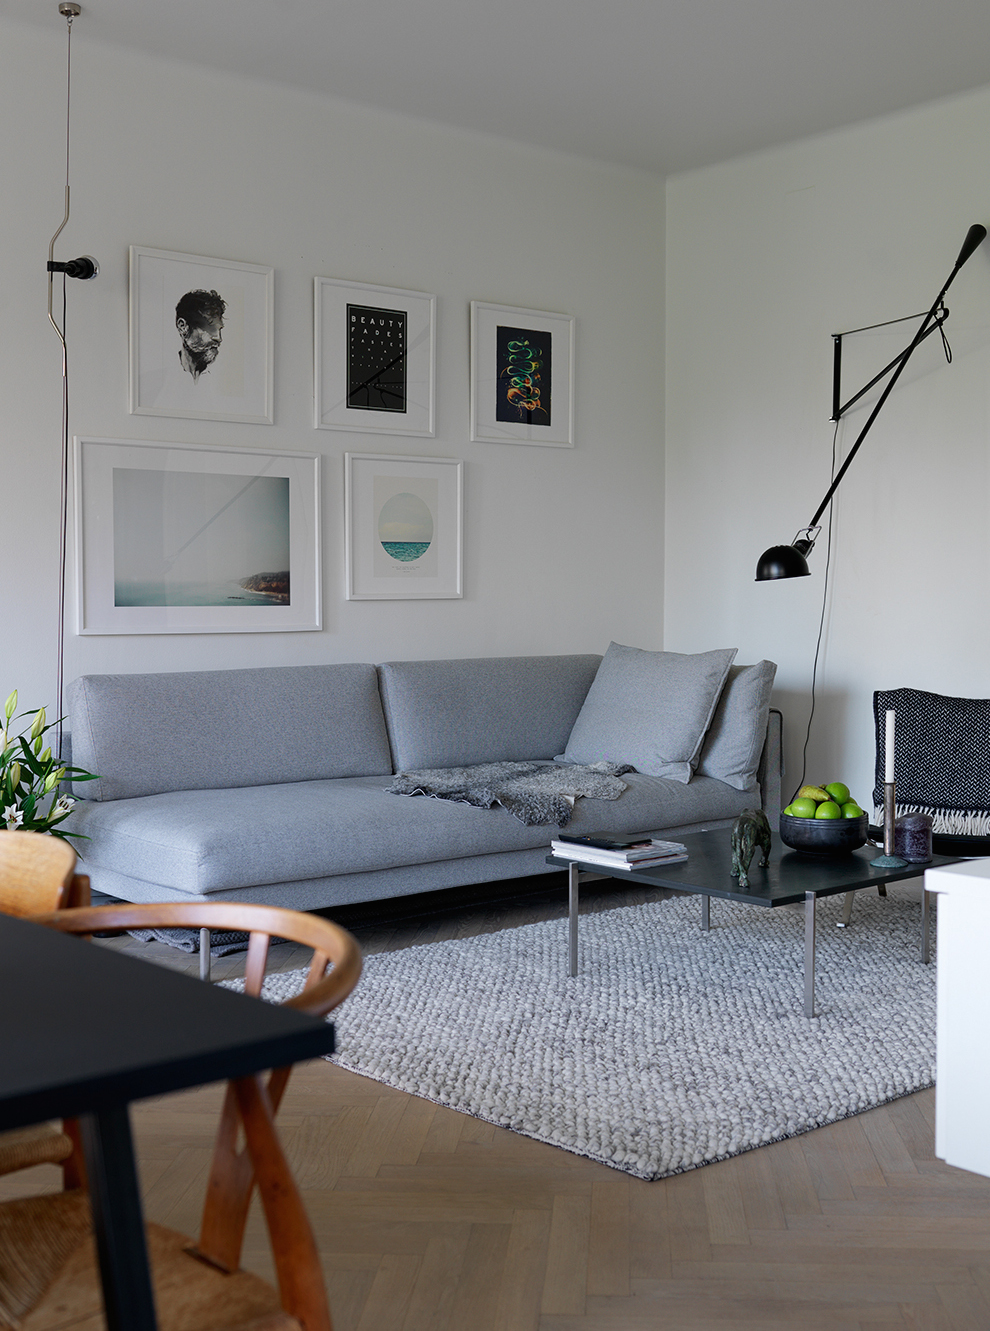 Grey in an interior the easiest way to match everything Together interiors